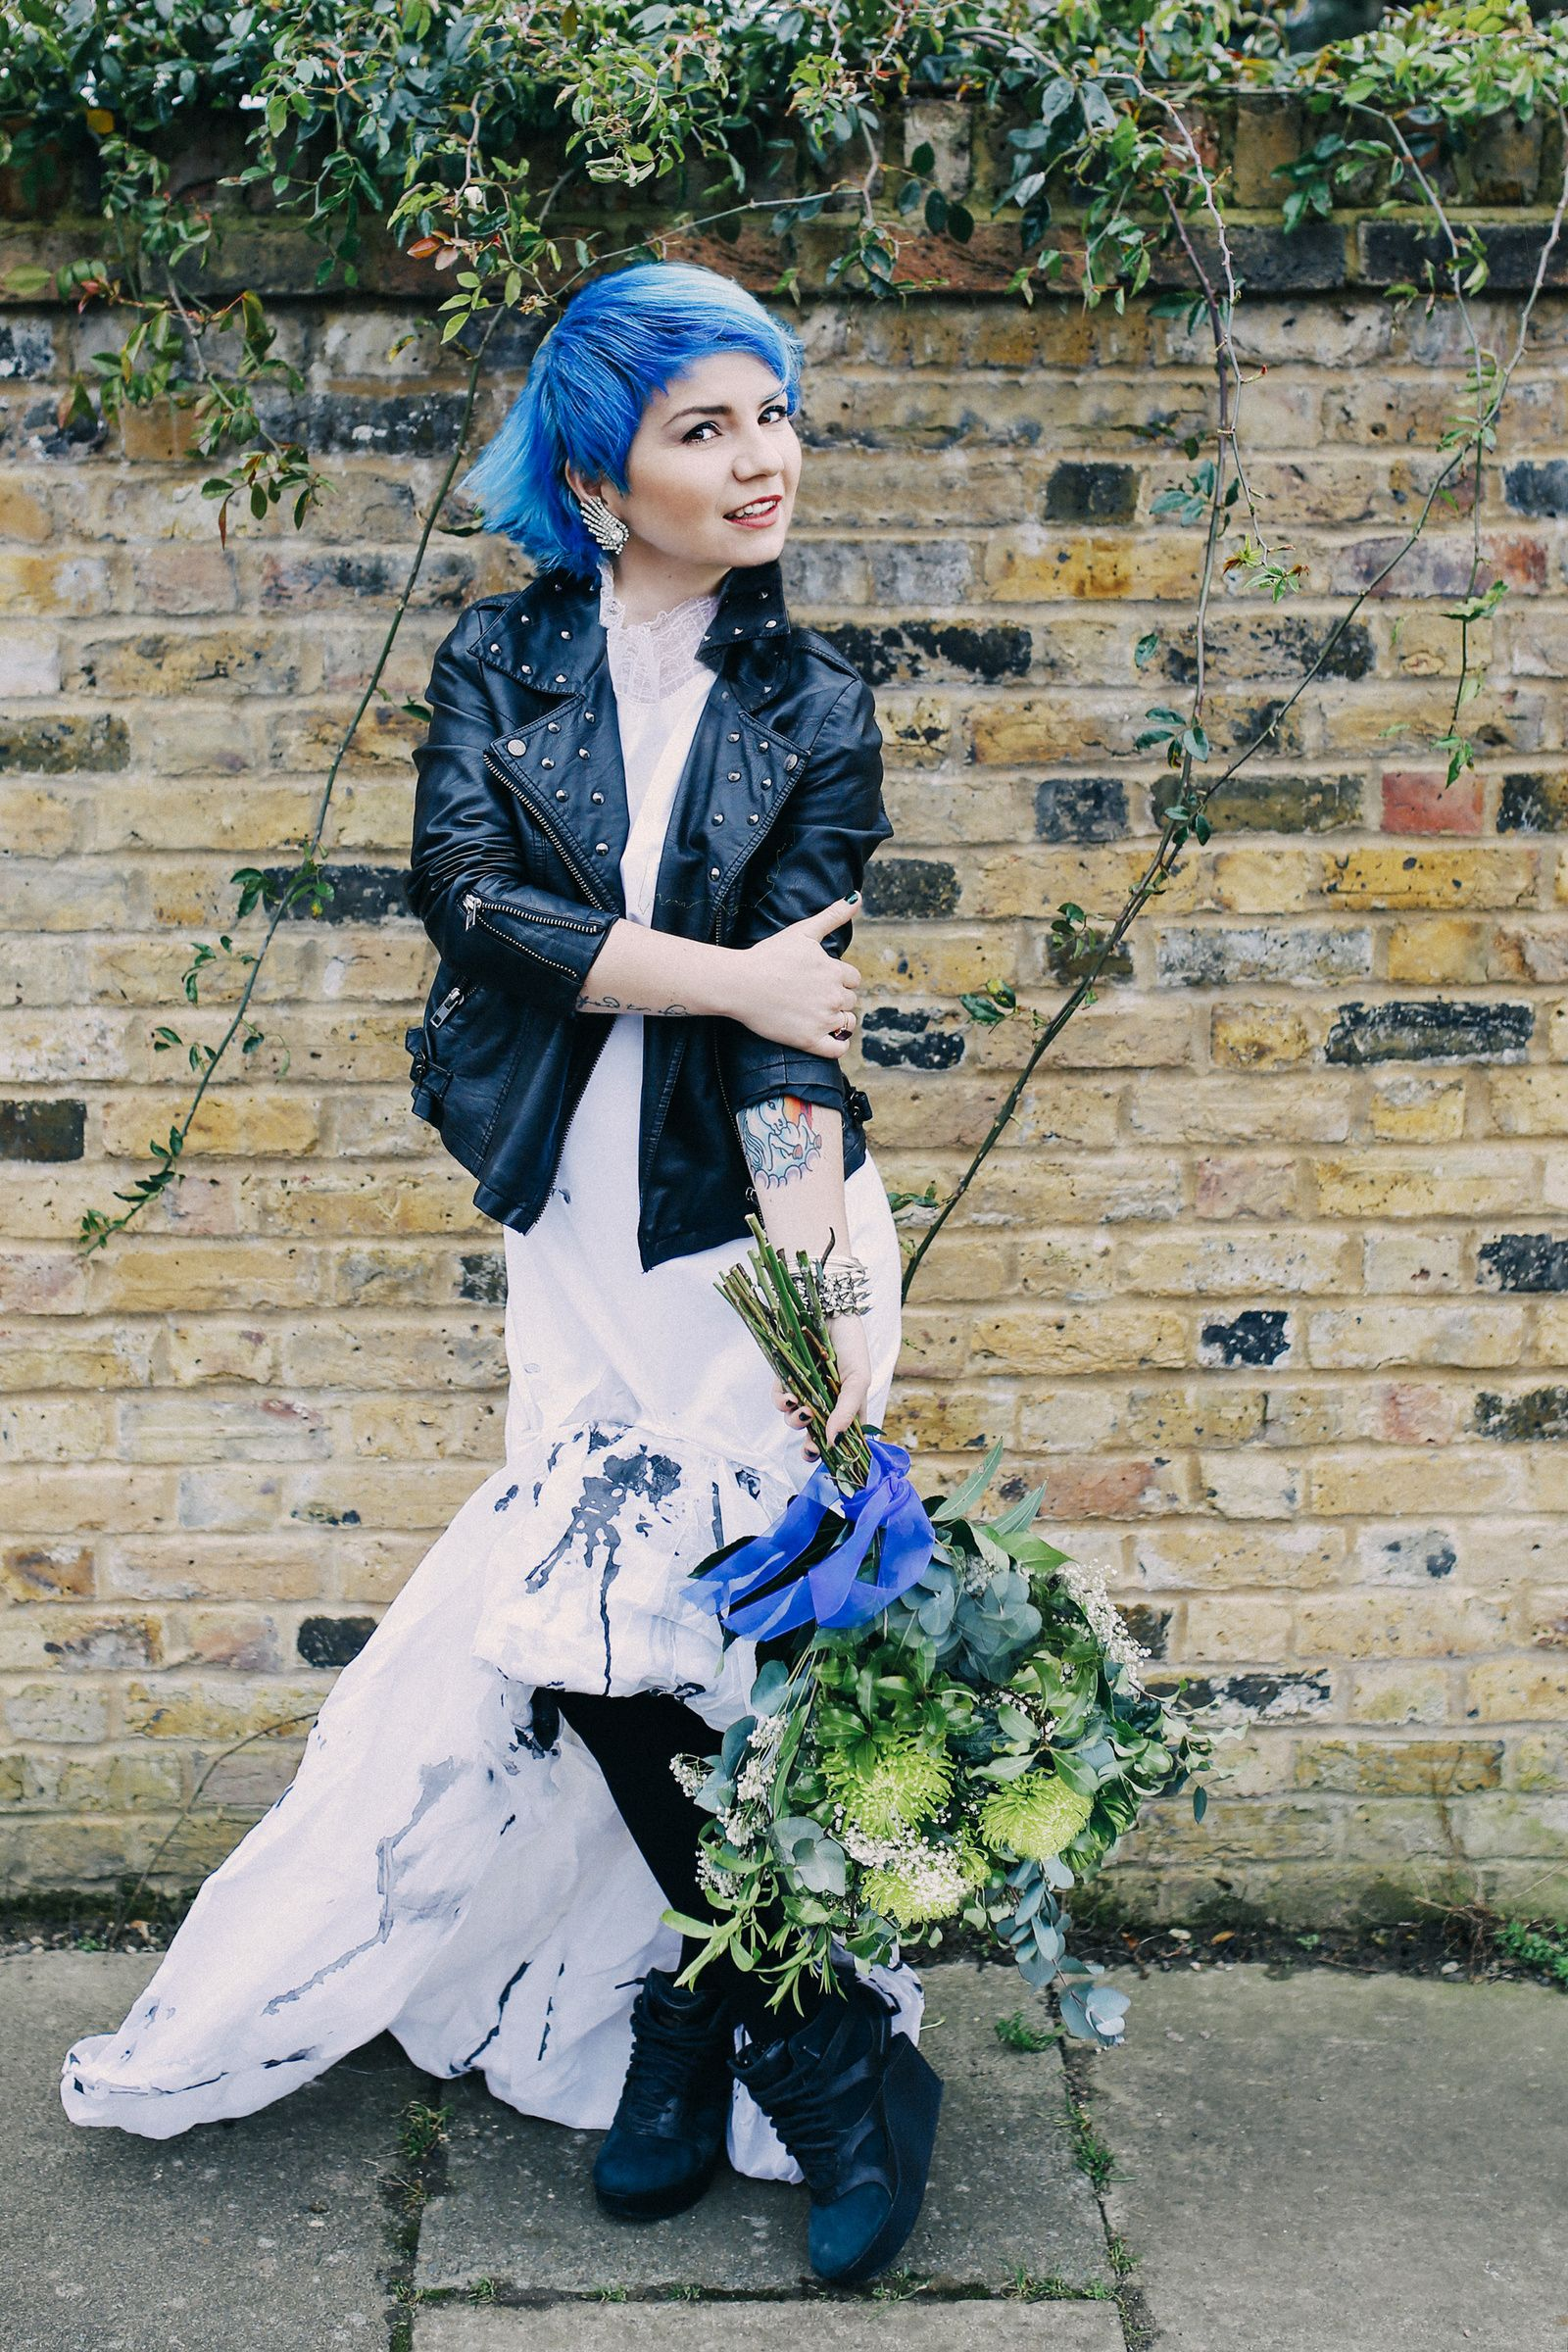 Blue haired bride in alternative designer wedding dress by paulina blue hair dress by unicorn tattoo modern and artistic wedding photography by joasis journal blue hair tattoos unique wedding dress massive green izmirmasajfo Image collections